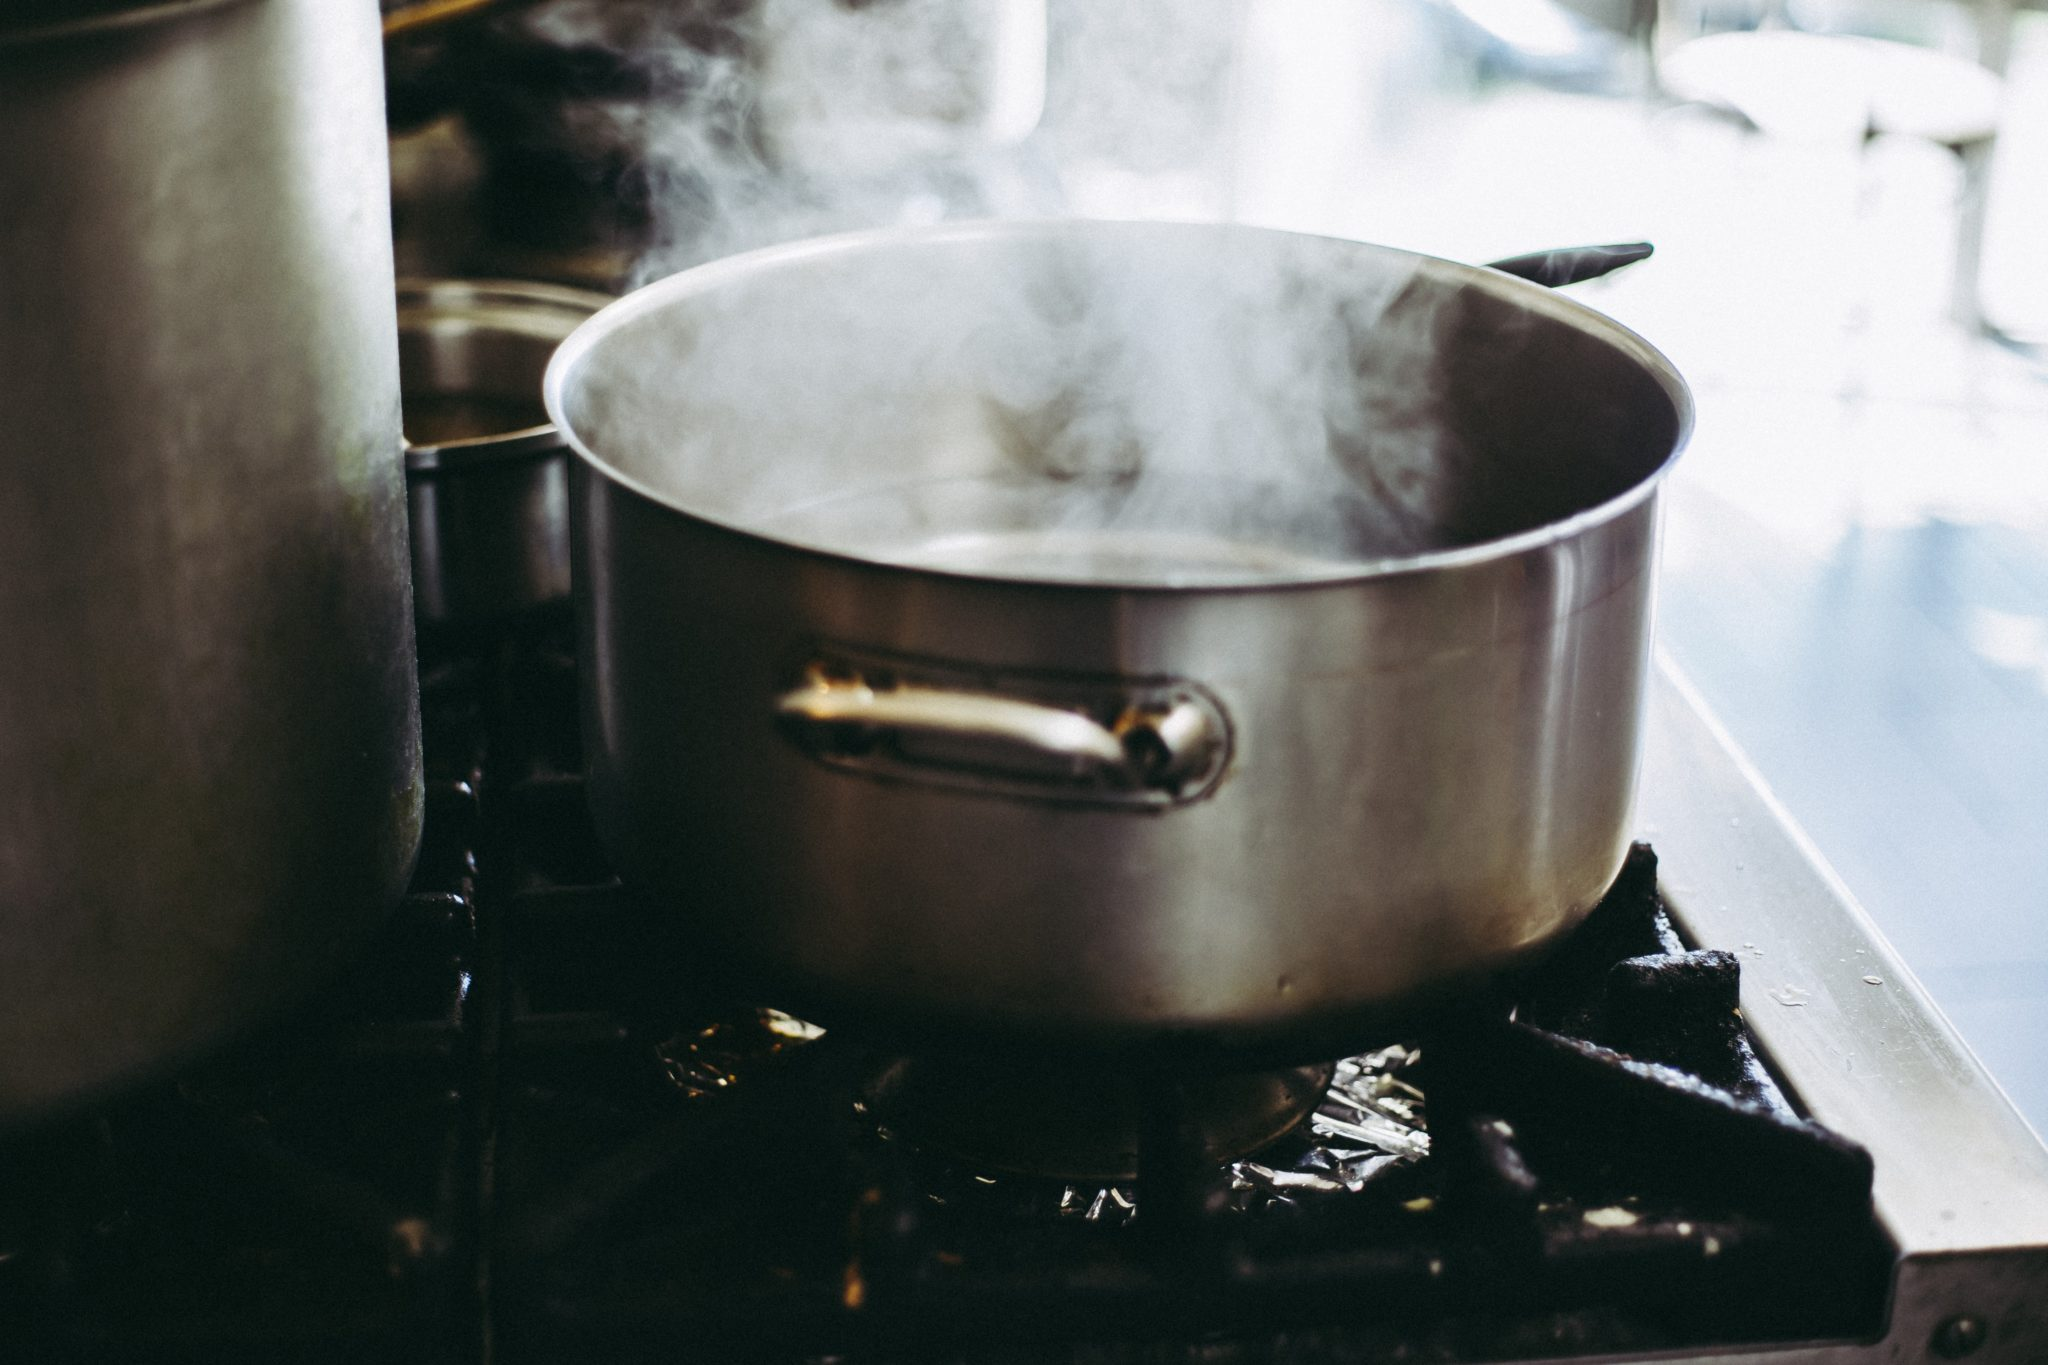 a pot of water boiling on the stove to remove antinutrients from food